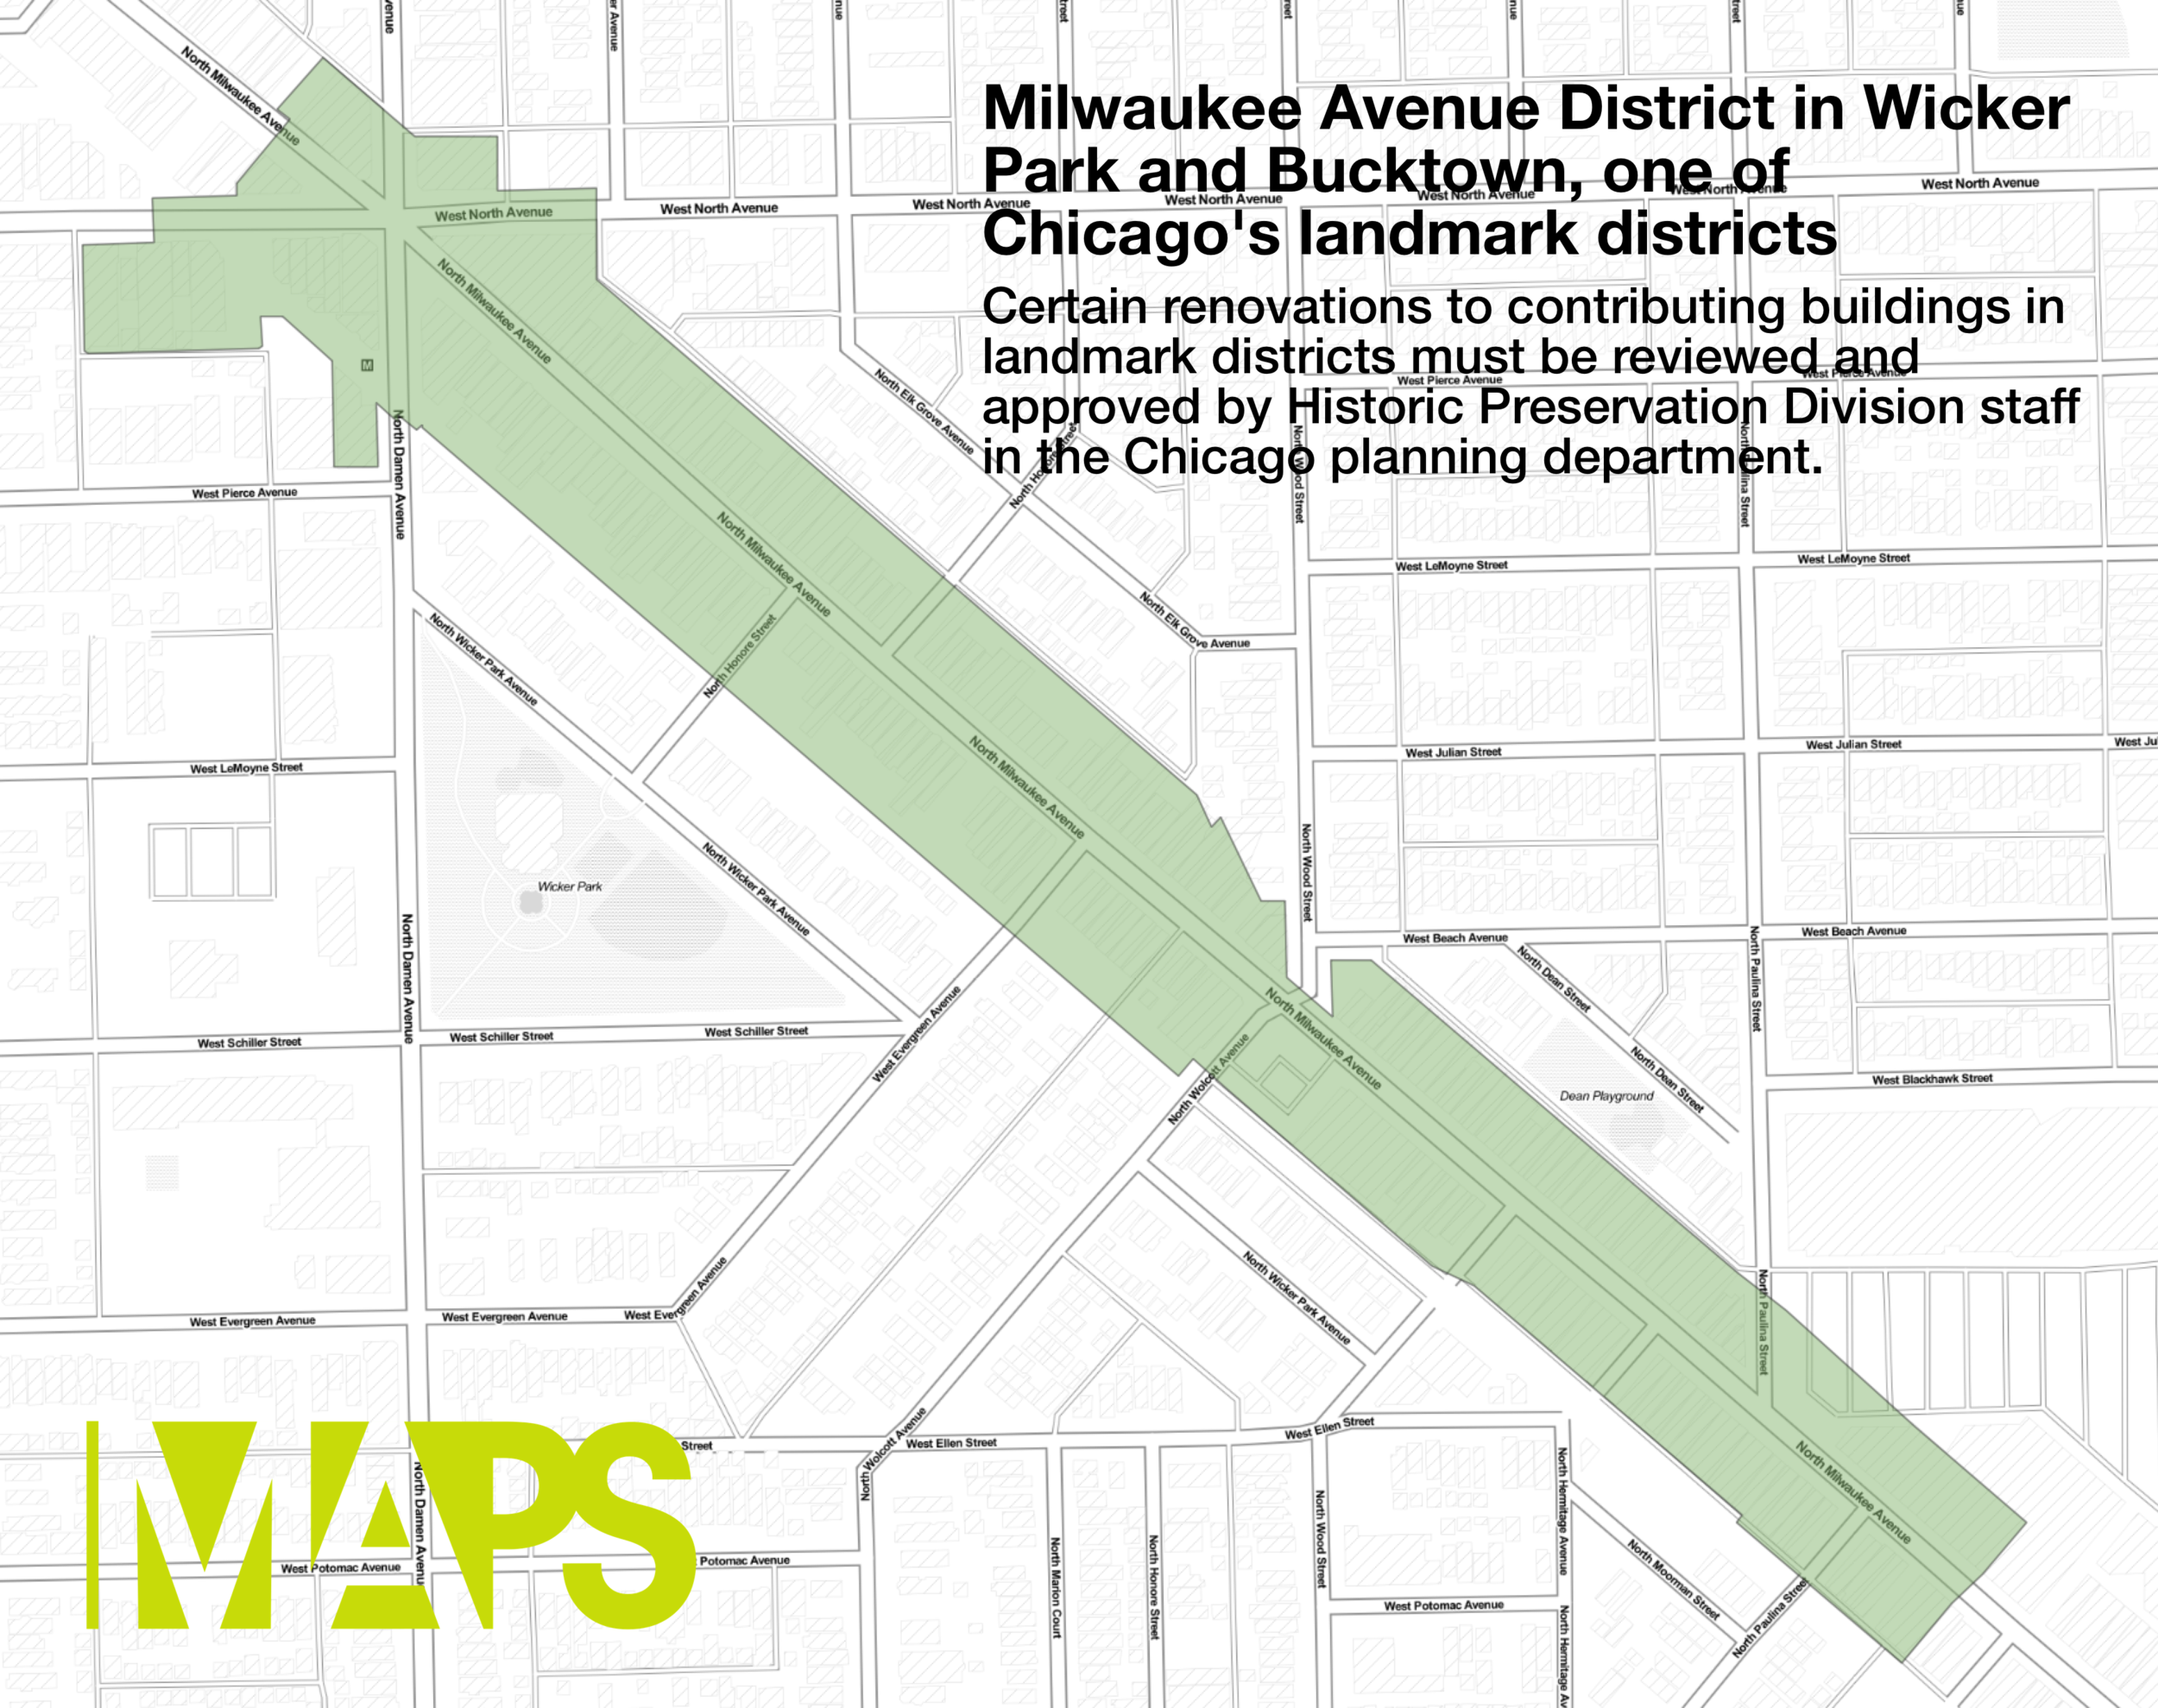 A map of the Milwaukee Avenue District. The district extends from about Paulina Street on the southeast end to about Damen Avenue and North Avenue on the northwest end.  View the interactive map .